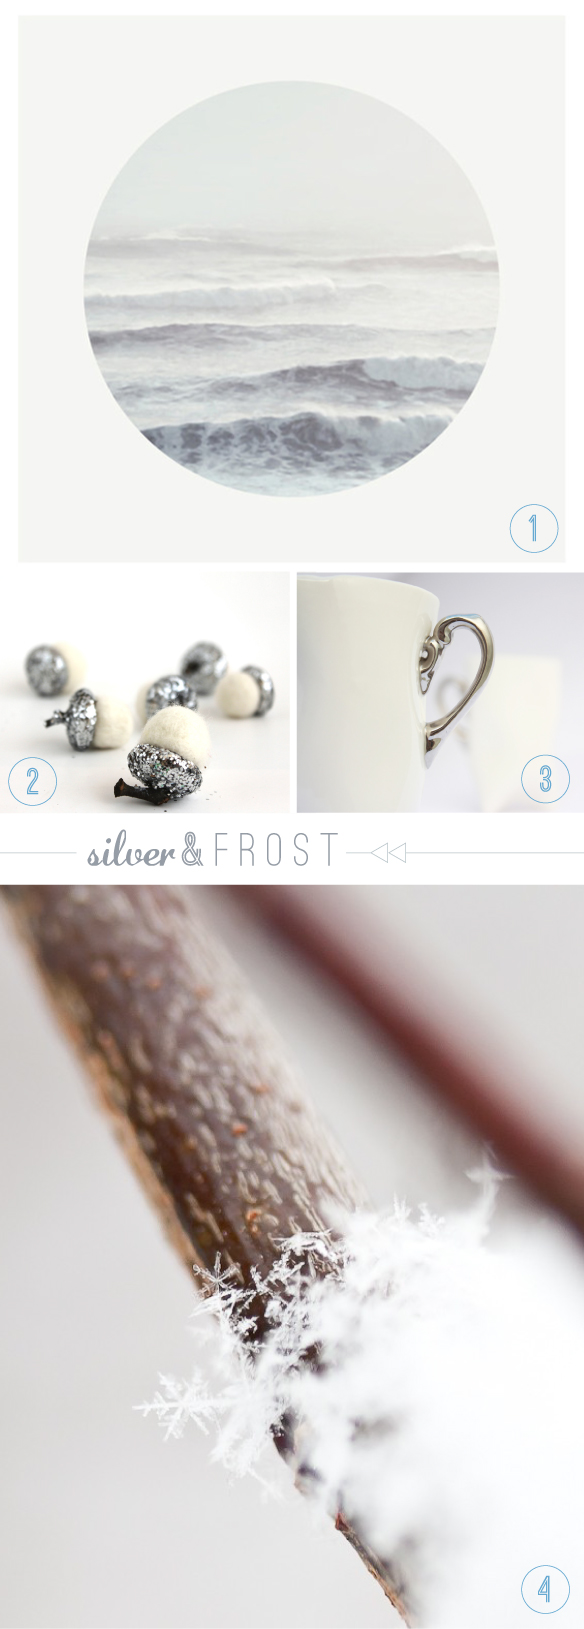 SilverandFrost-Beautiful-Hello-Blog